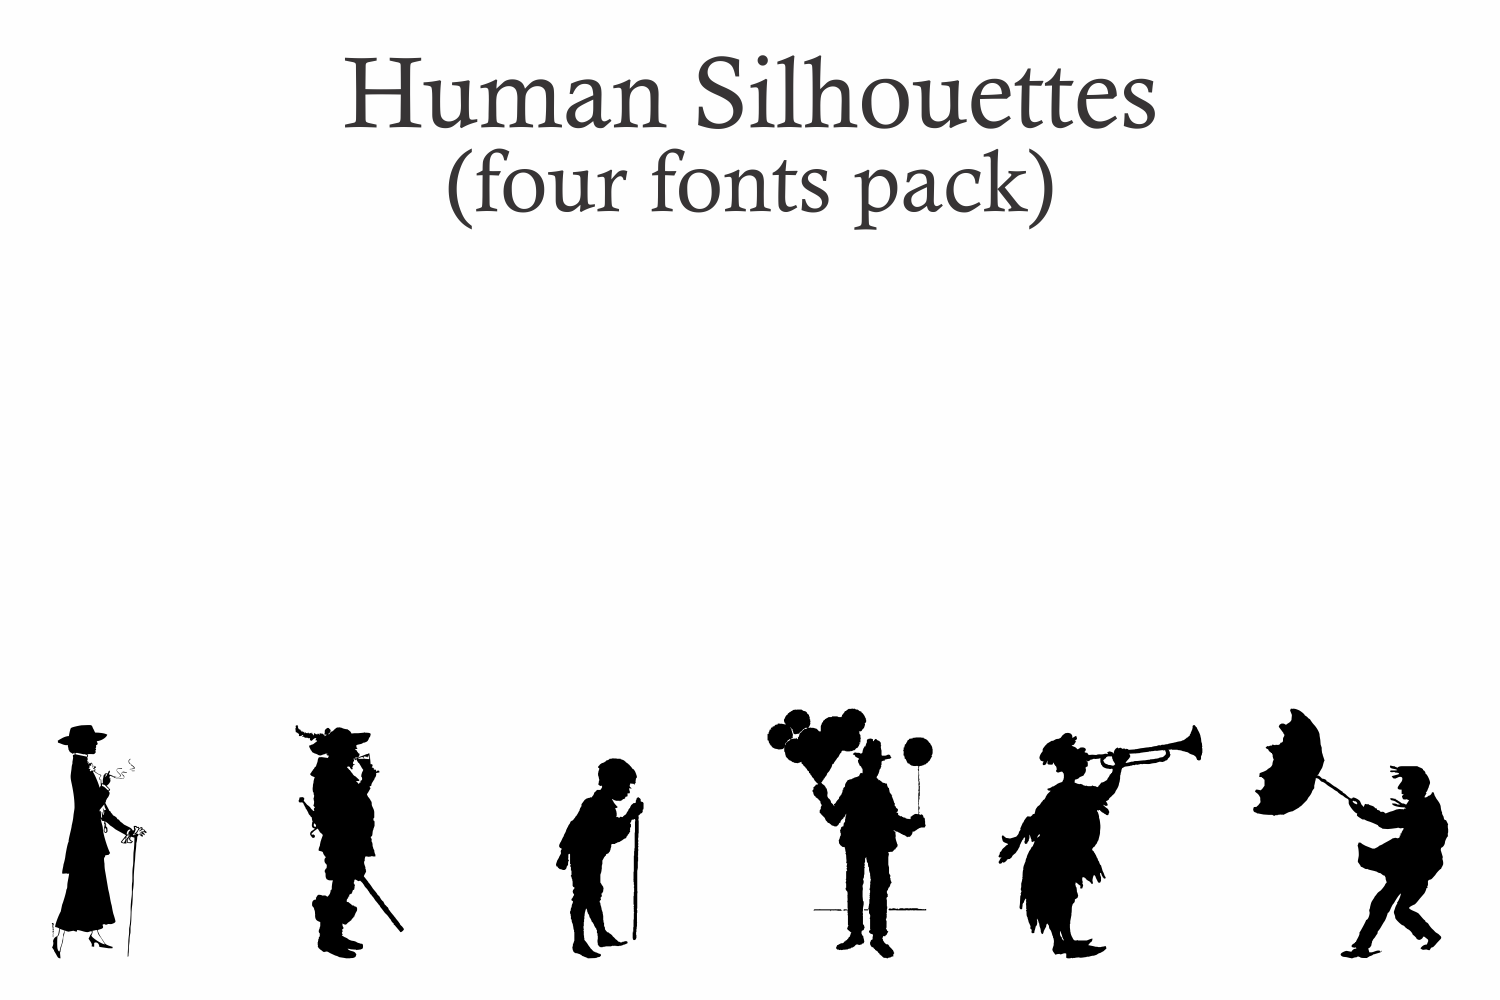 Human Silhouettes Pack - 4 Fonts example image 4